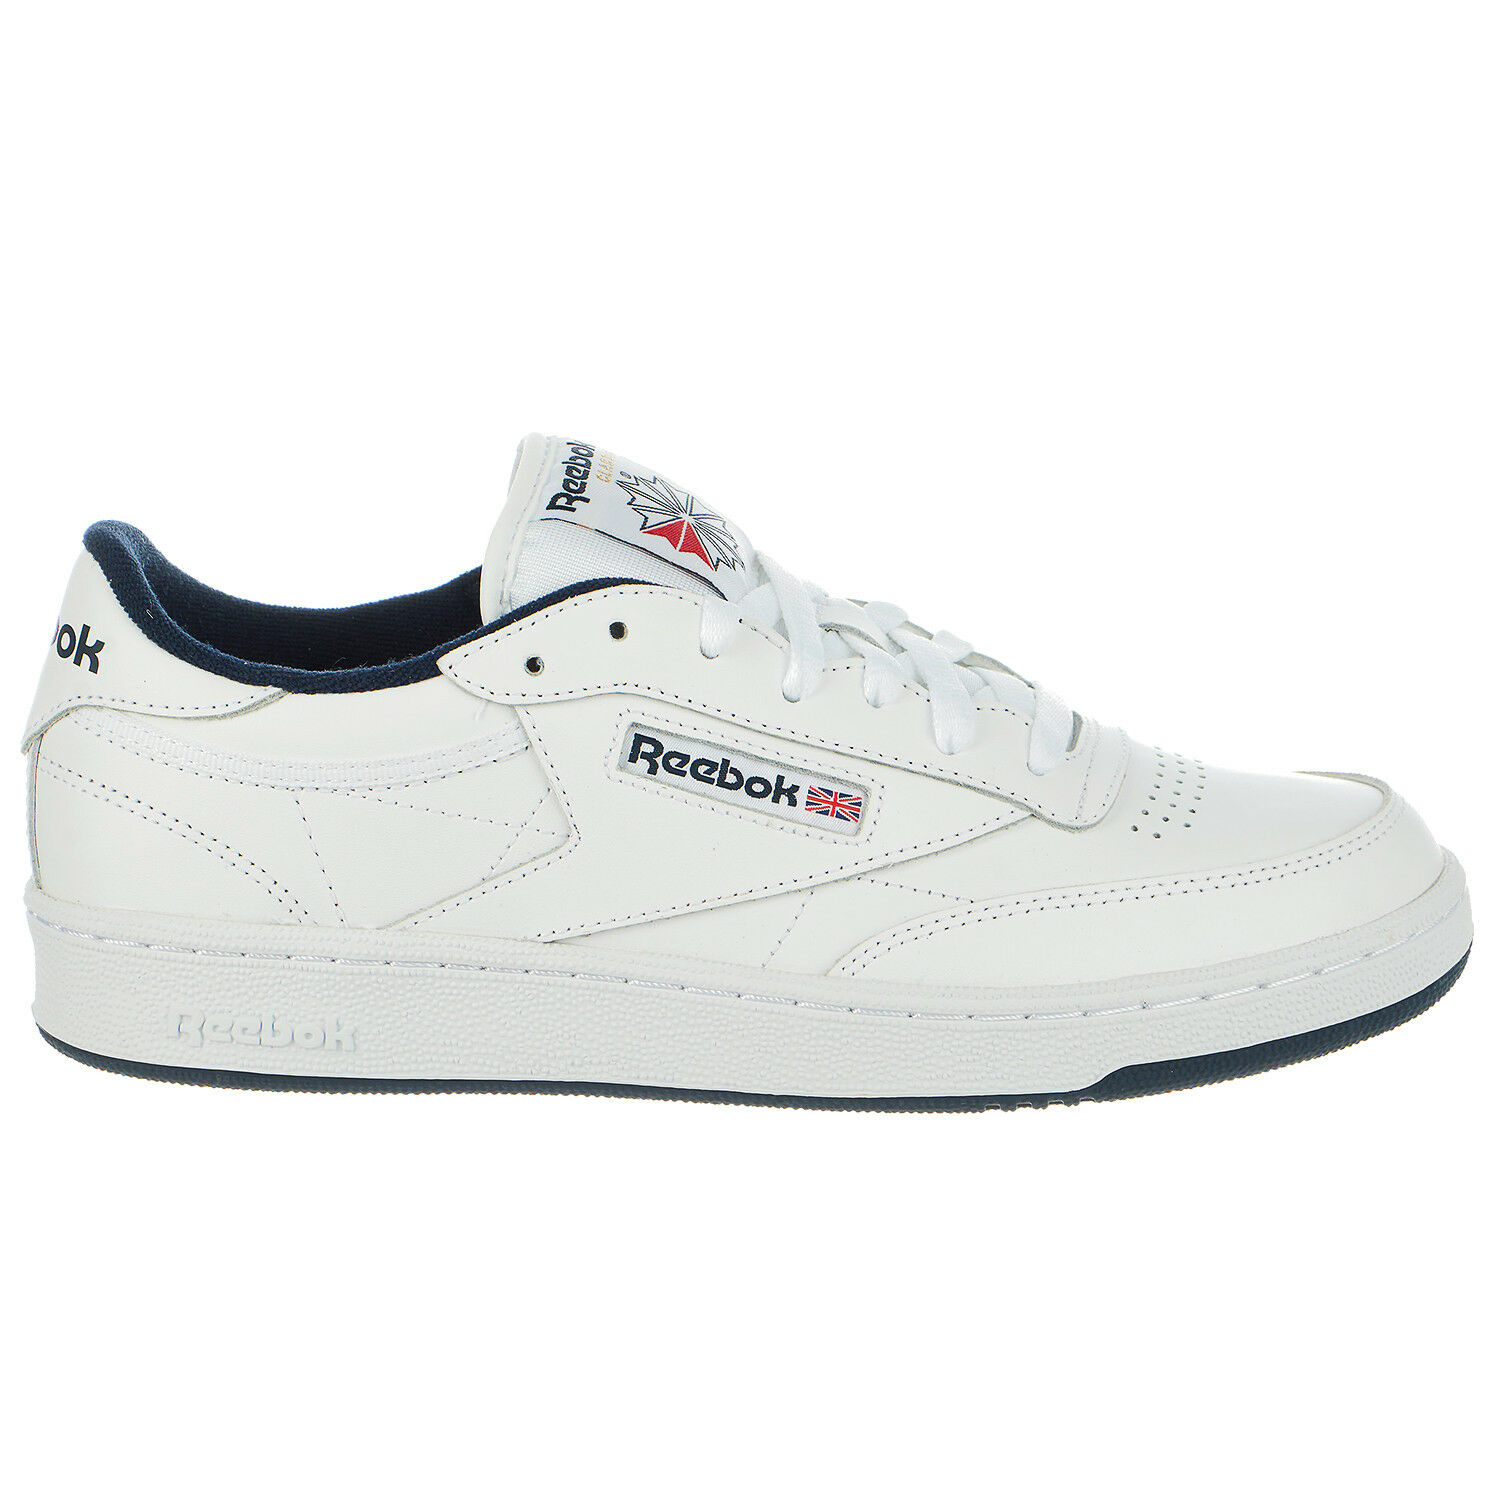 Reebok Club C 85 Chaussures - Homme